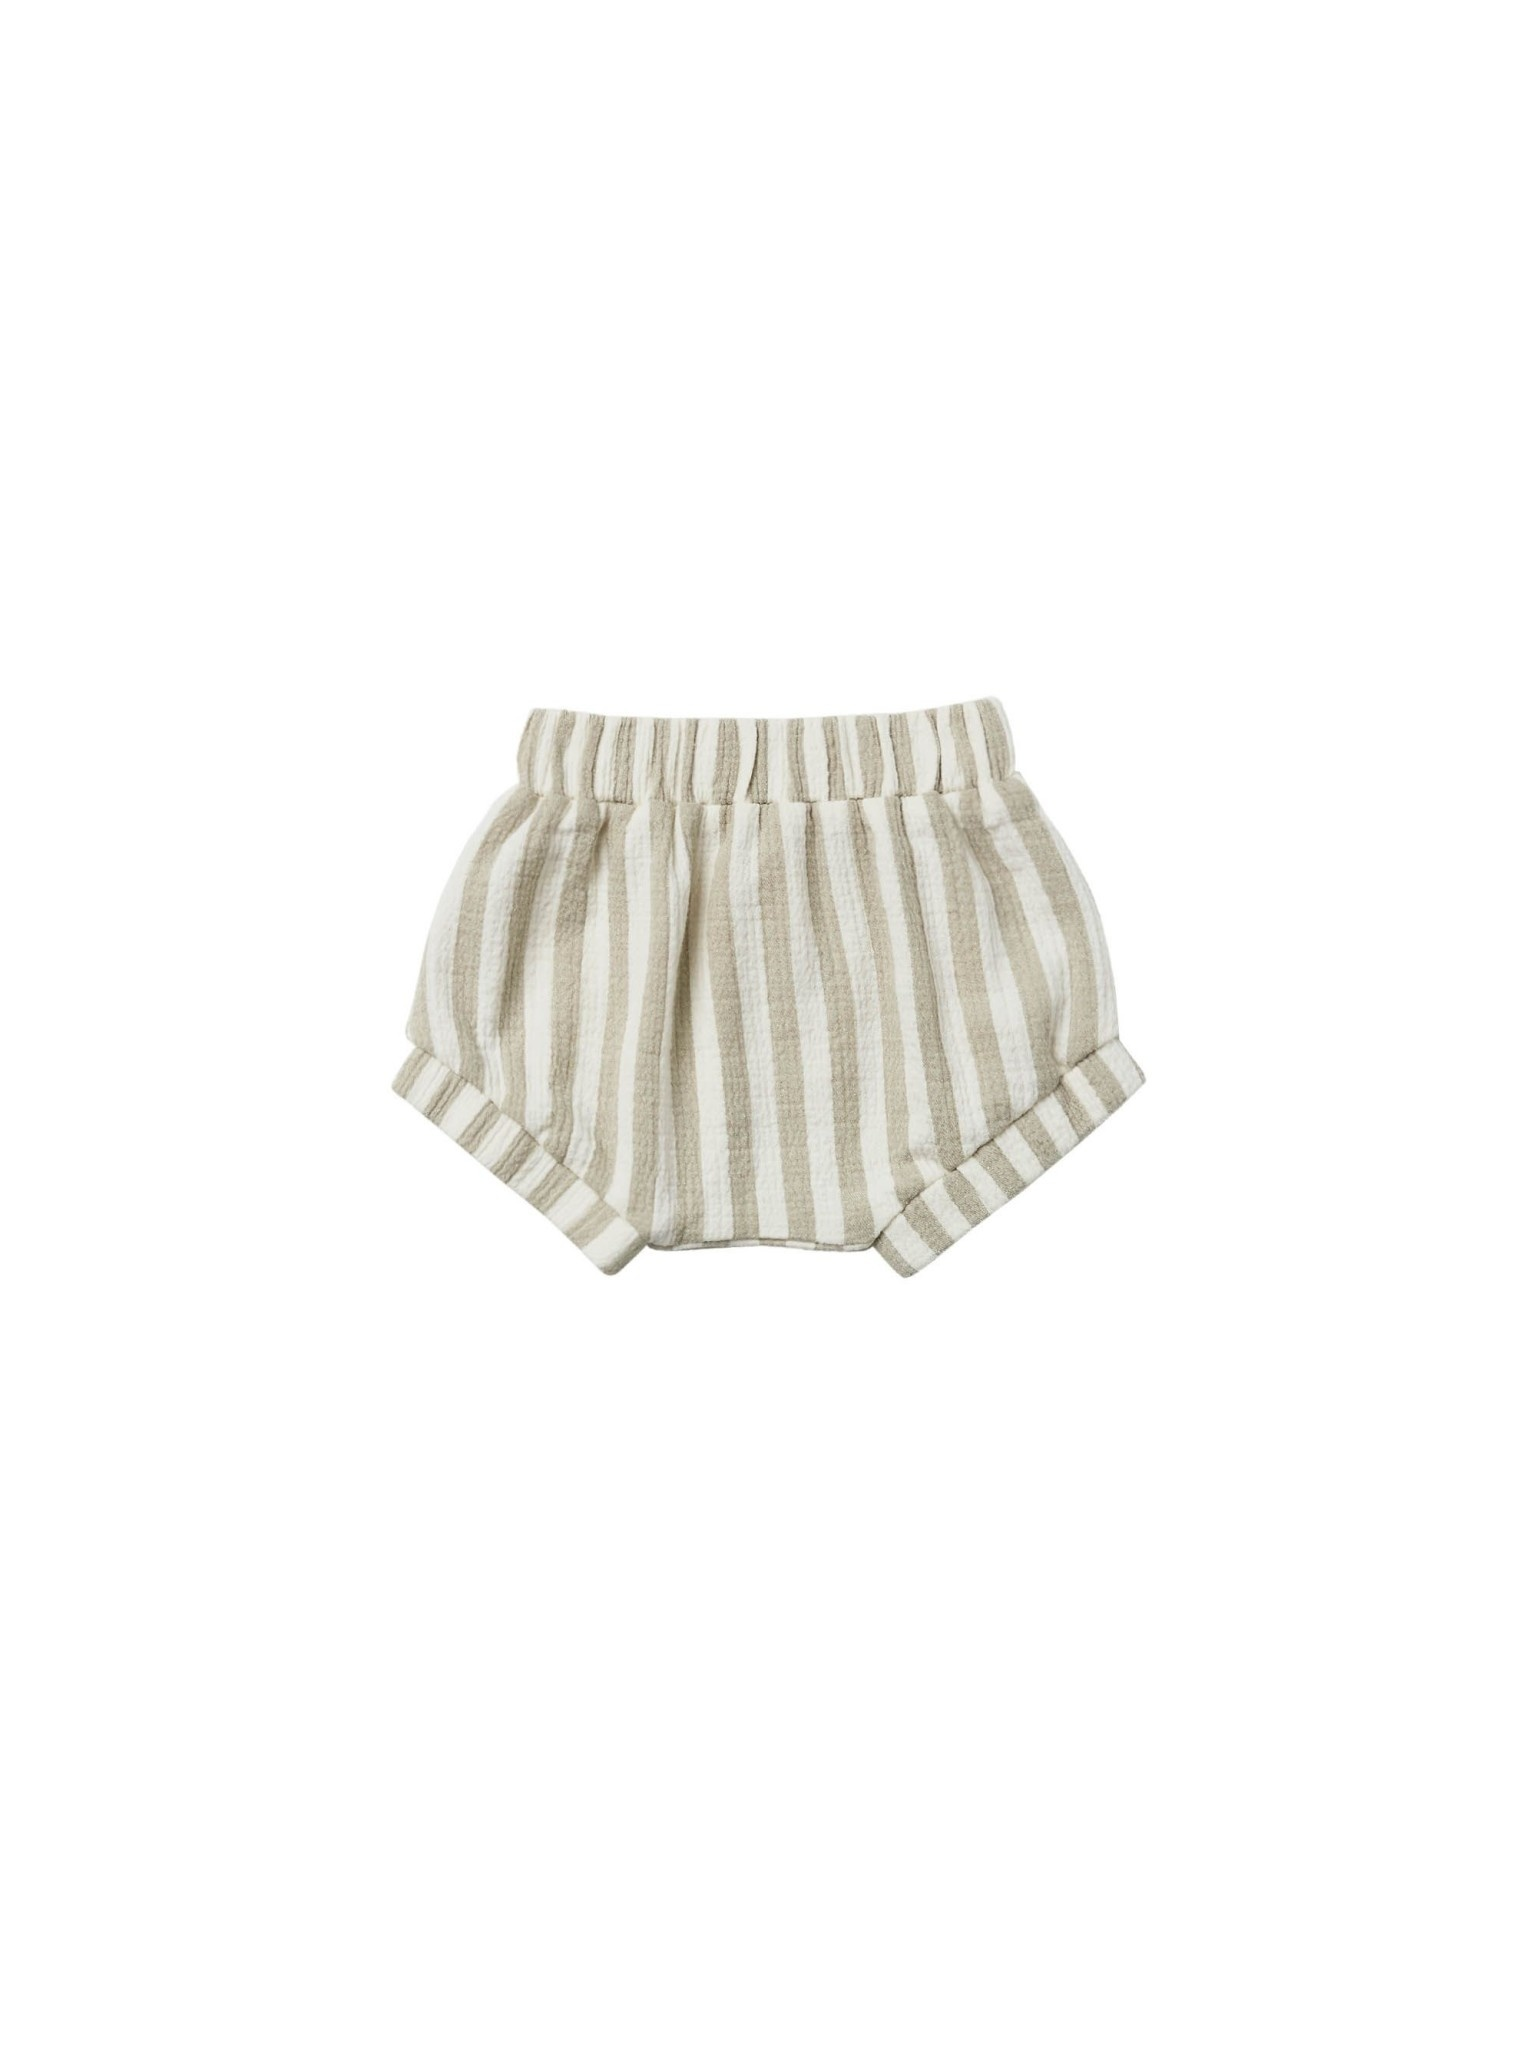 QUINCY MAE Woven Short